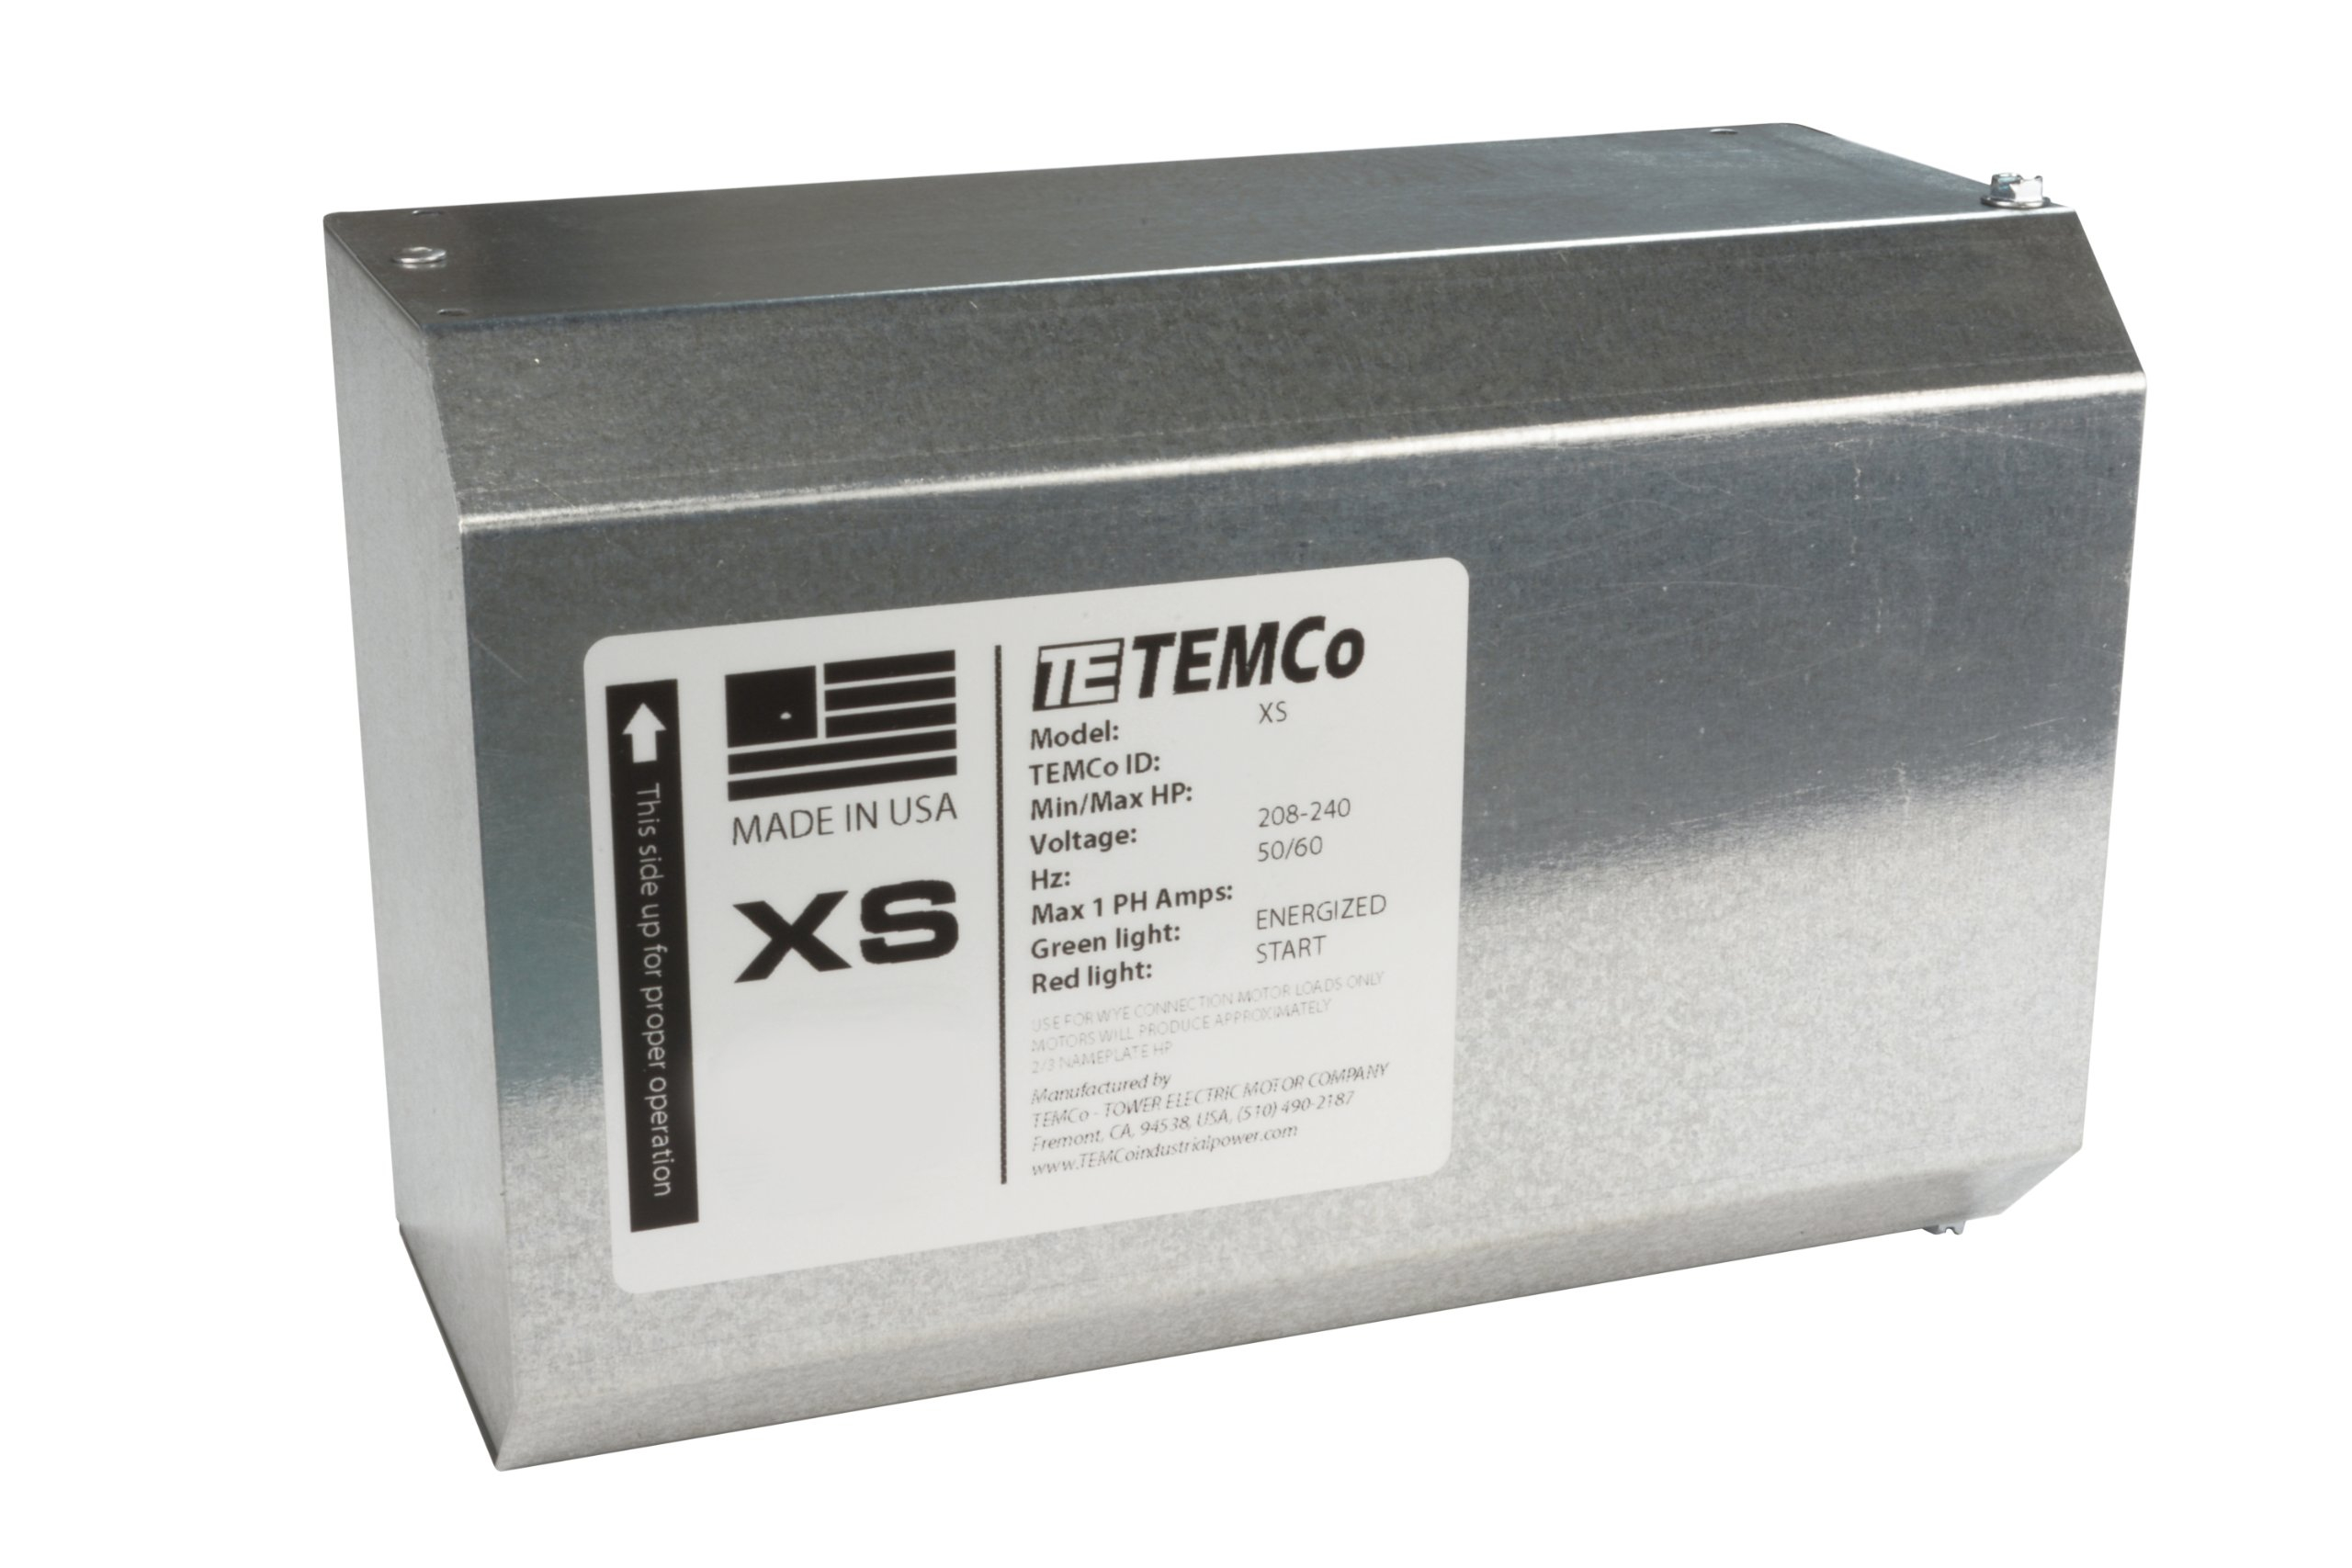 TEMCo XS1 Static Phase Converter PC0012 - HD 3/4 - 1 1/2 HP Mill Drill Saw MADE IN USA Single to three 5 Year Warranty